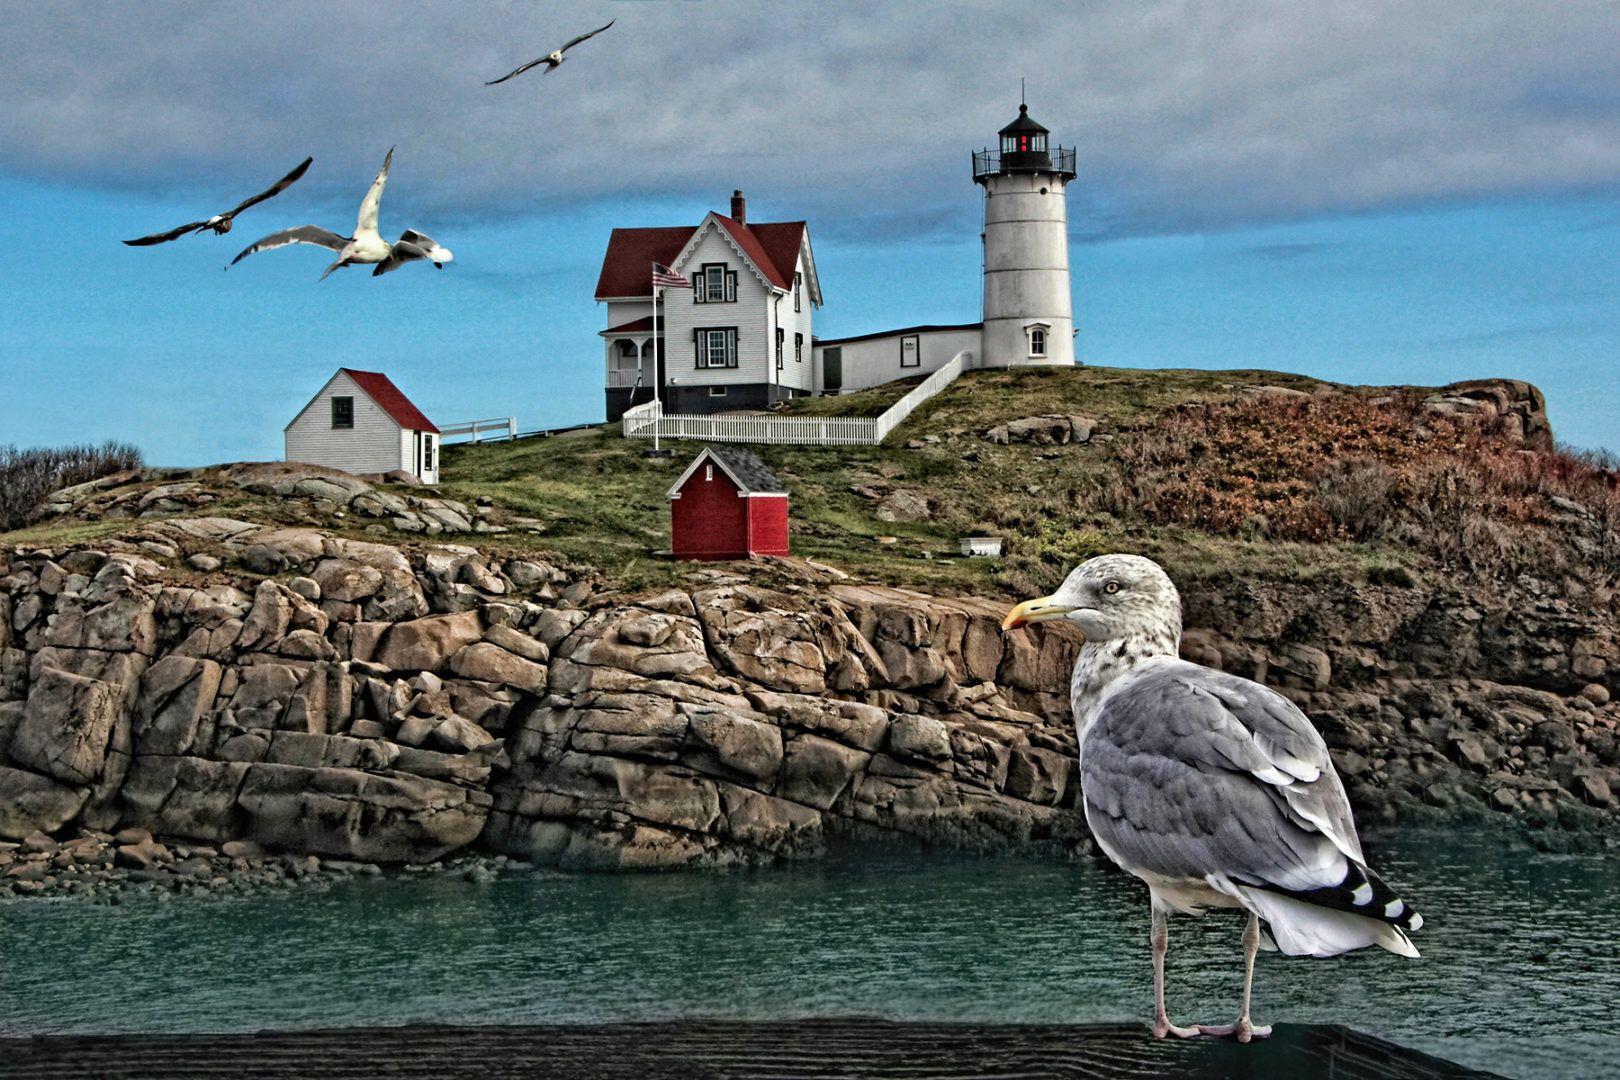 Nubble Light and Seagulls